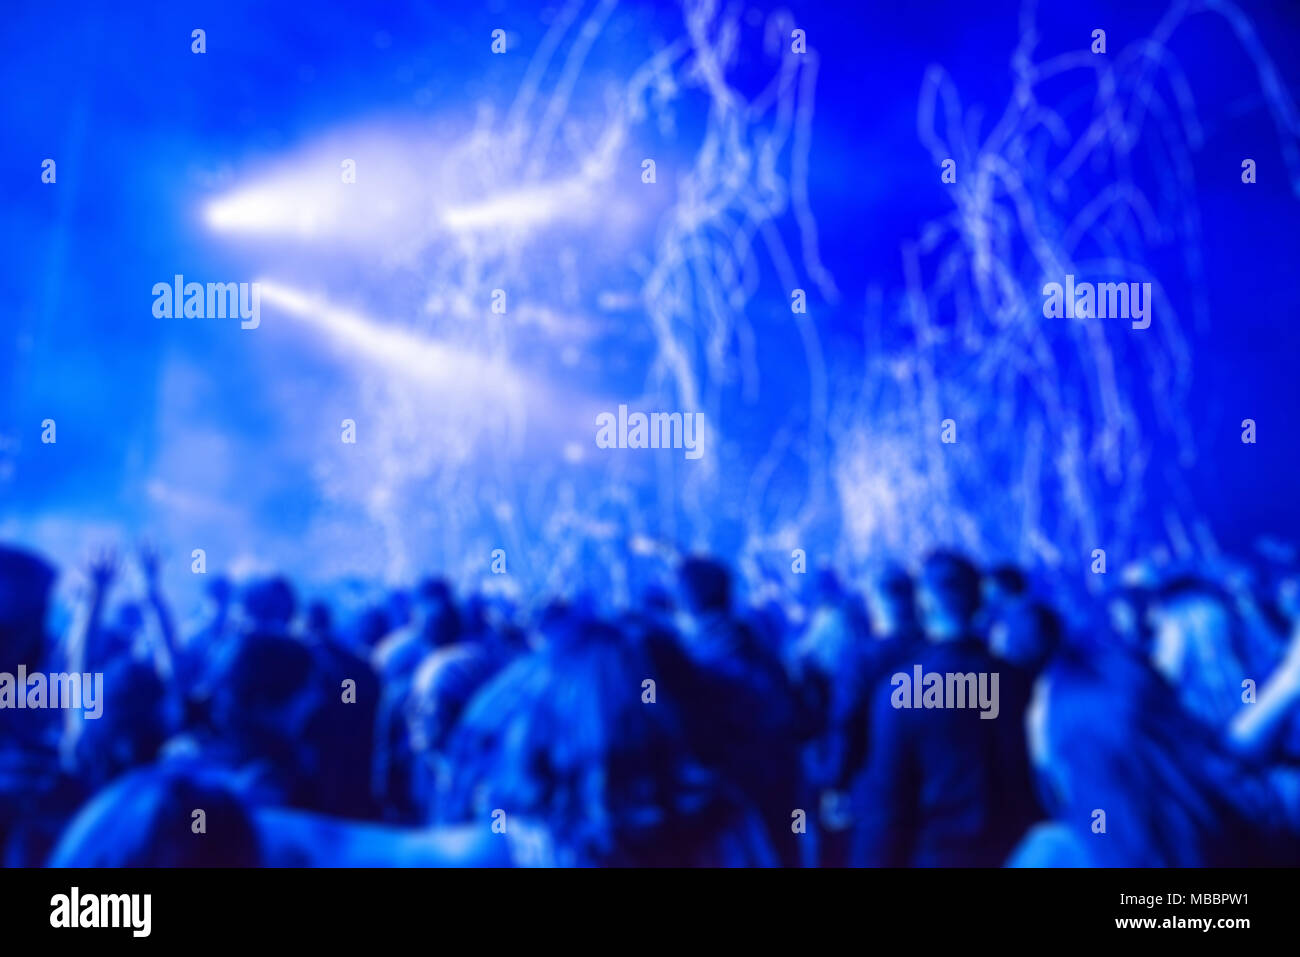 Blurred Background With Crowd Of People Partying And Stage Lights At A Live Concert